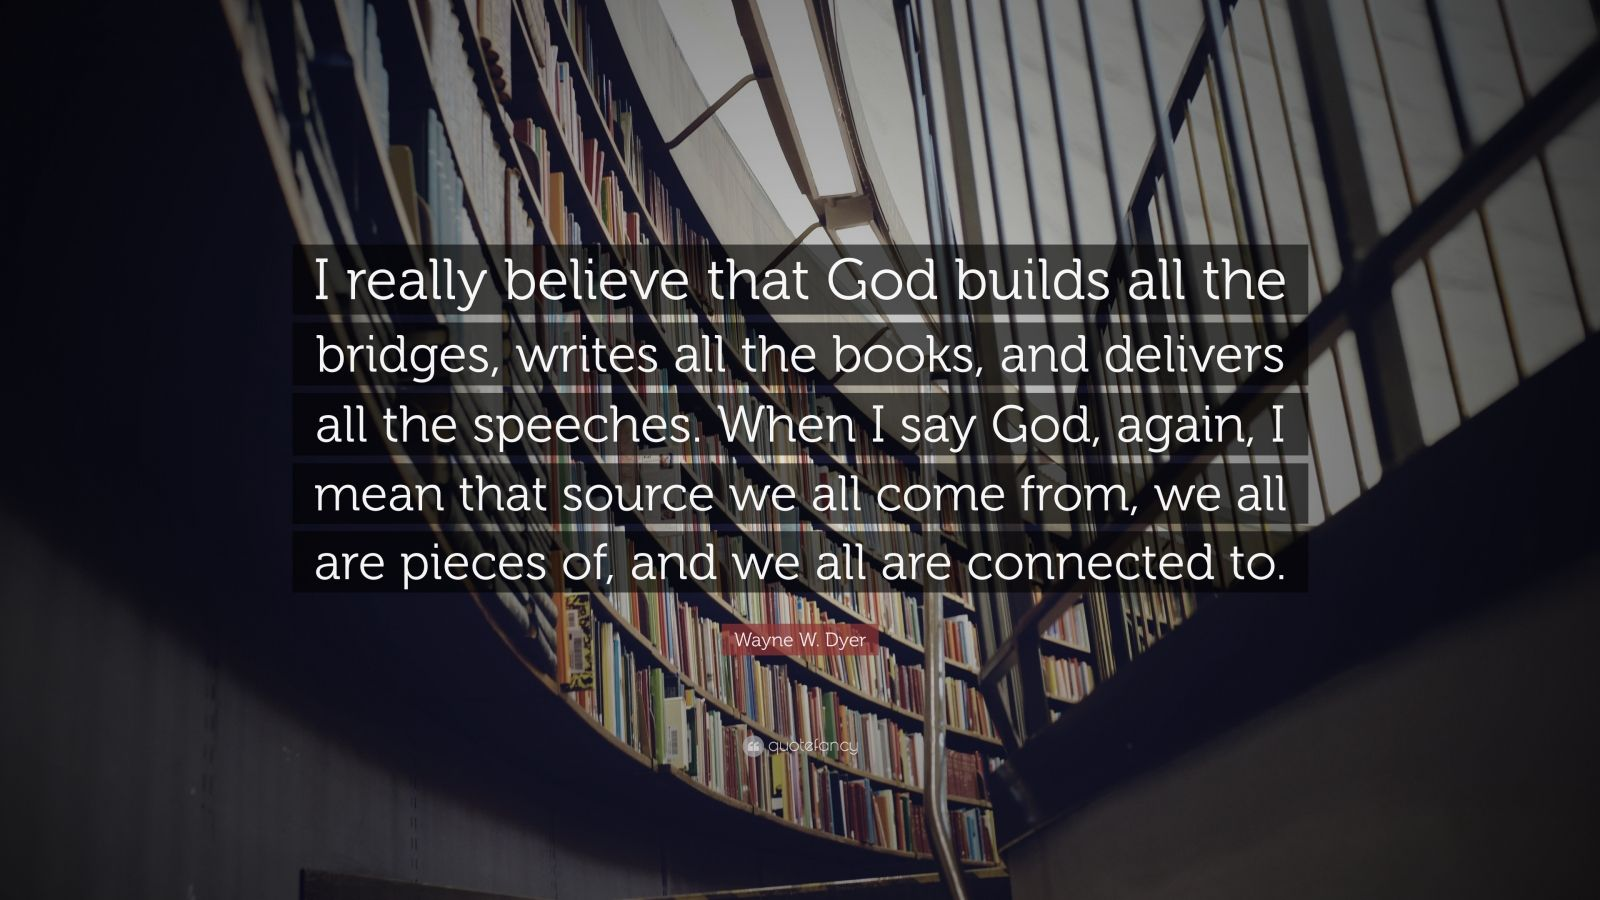 """Wayne W. Dyer Quote: """"I really believe that God builds all the bridges, writes all the books, and delivers all the speeches. When I say God, again, I mean that source we all come from, we all are pieces of, and we all are connected to."""""""